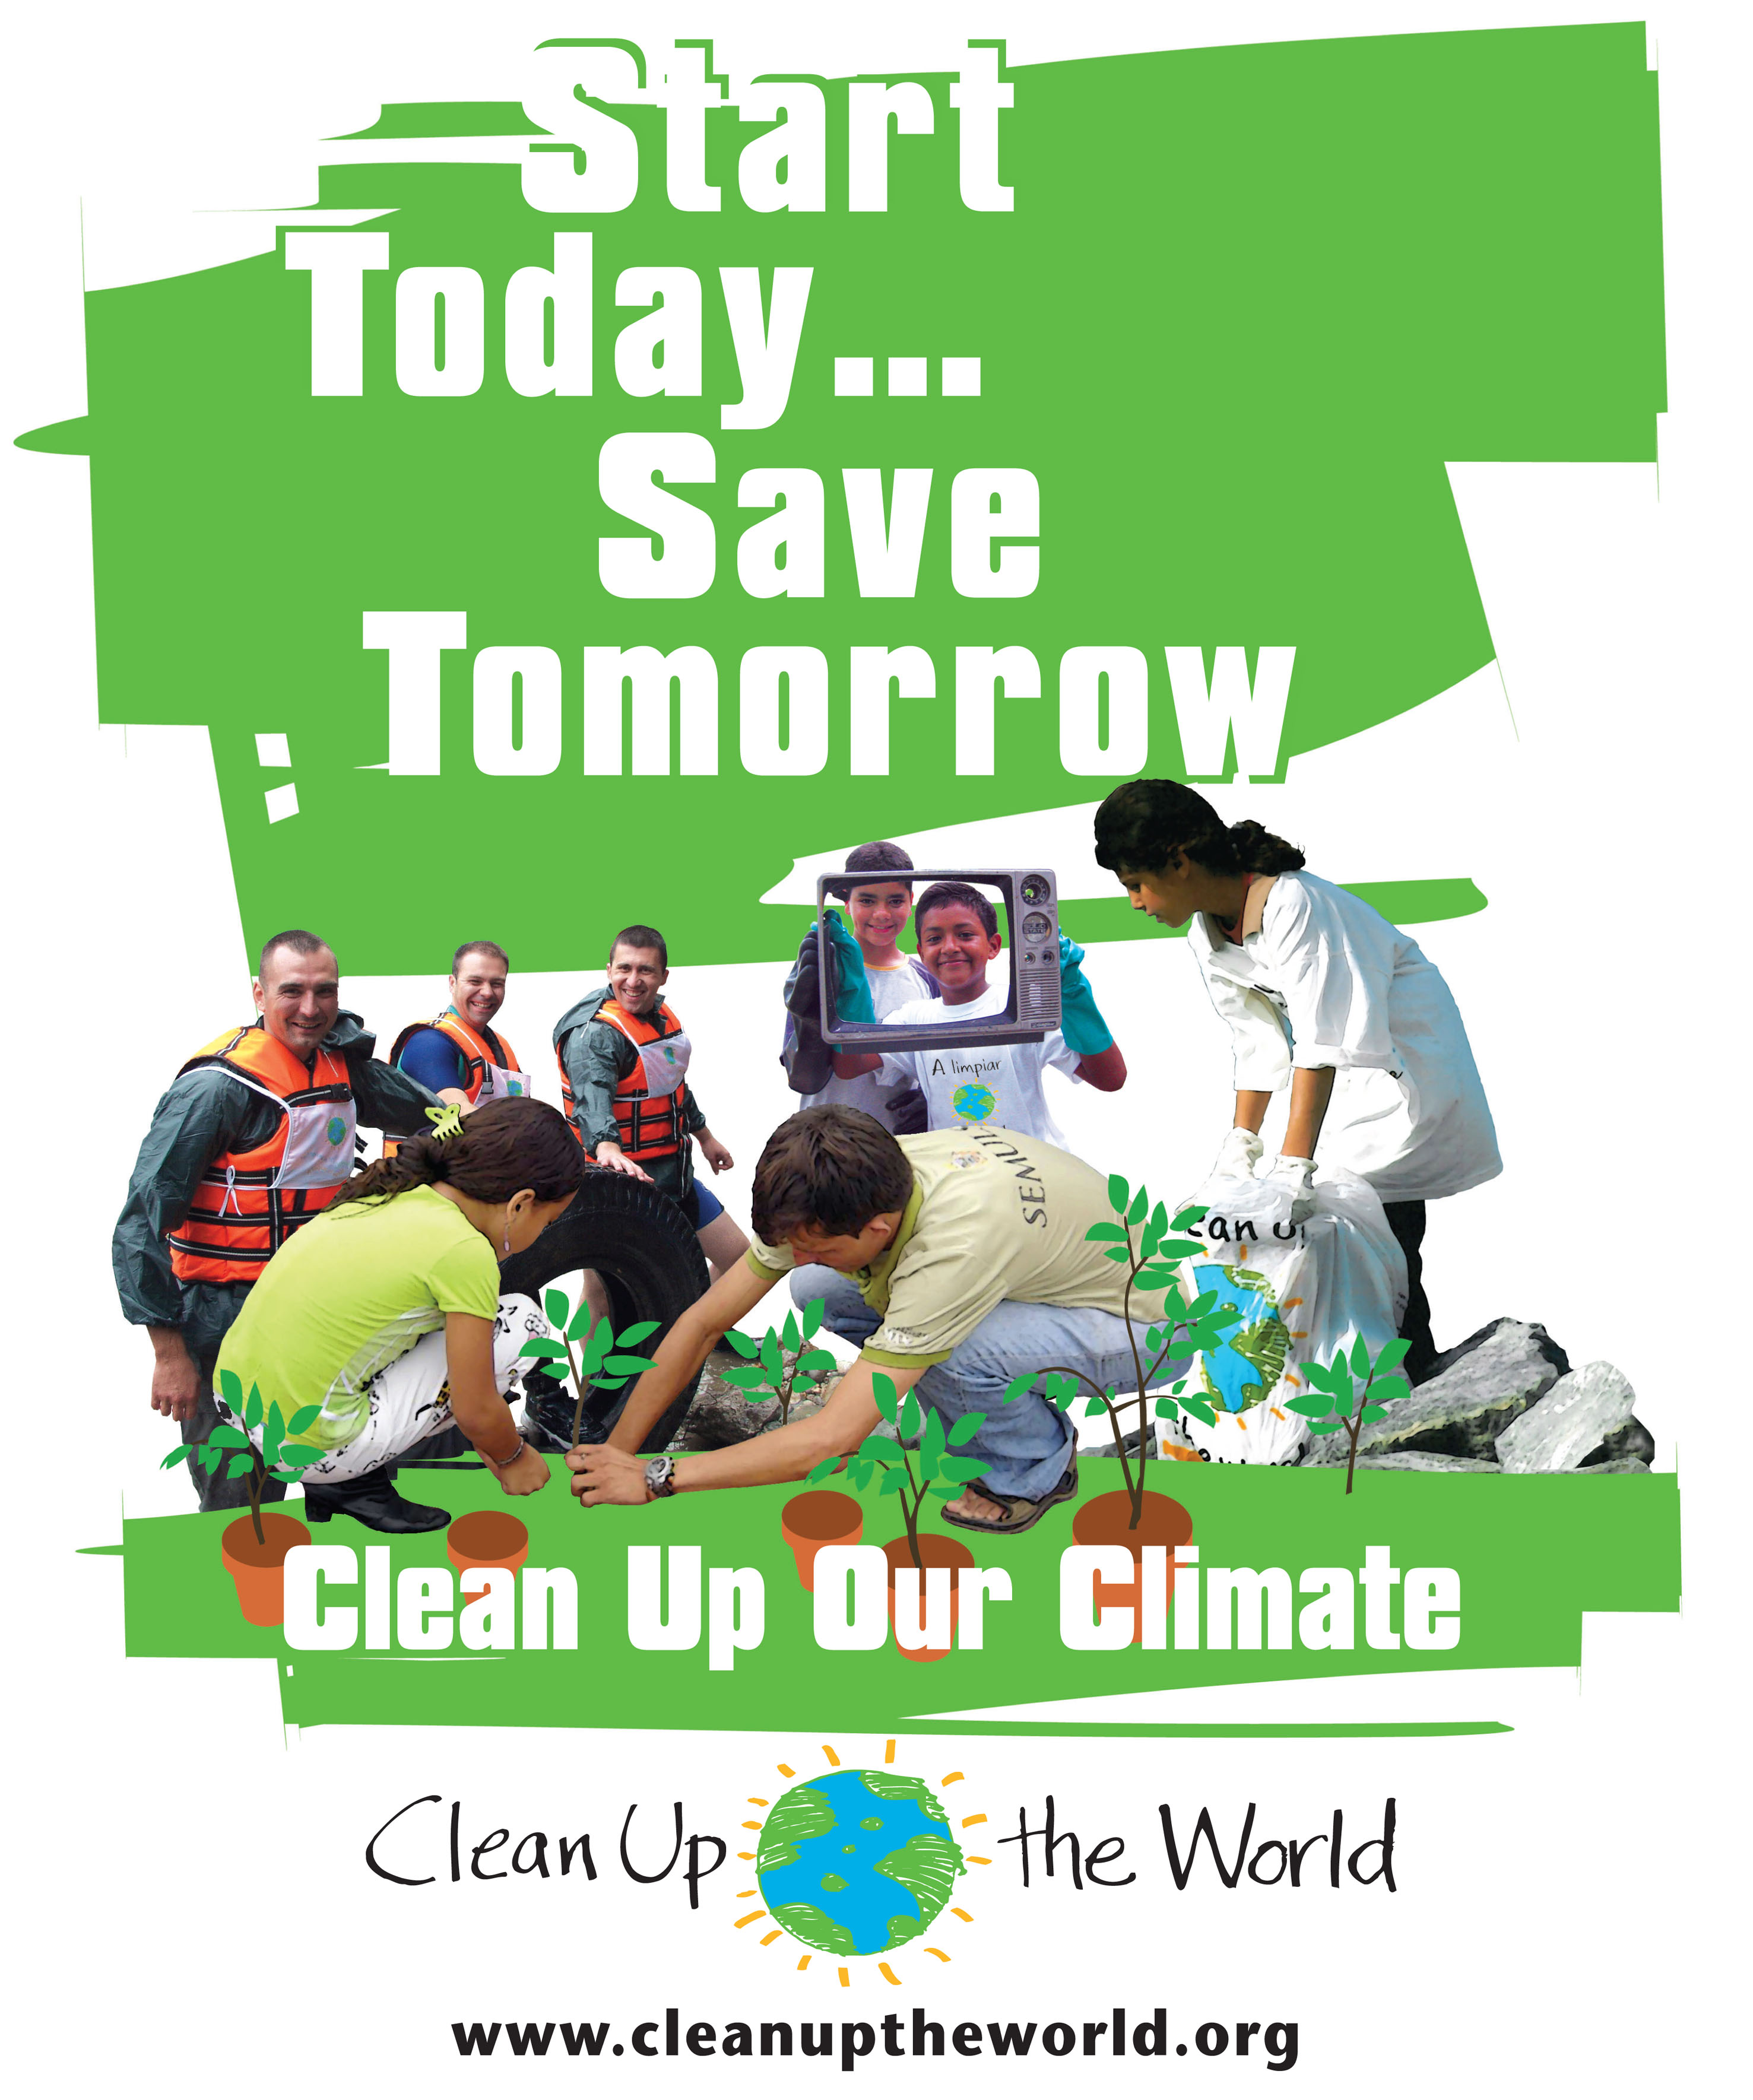 quotes about cleaning up the environment 34 quotes